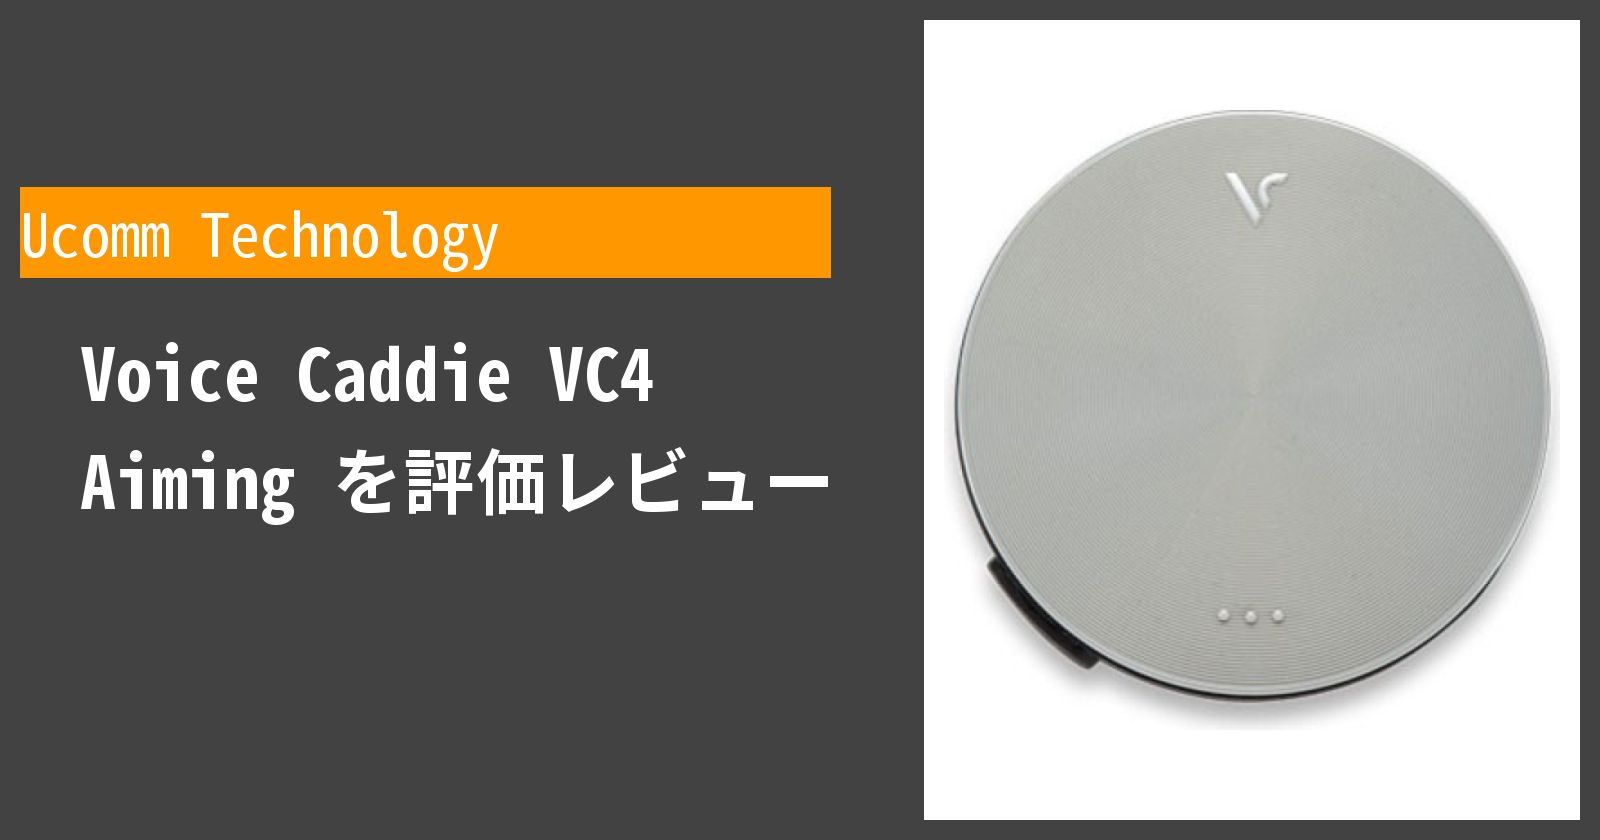 Voice Caddie VC4 Aimingを徹底評価